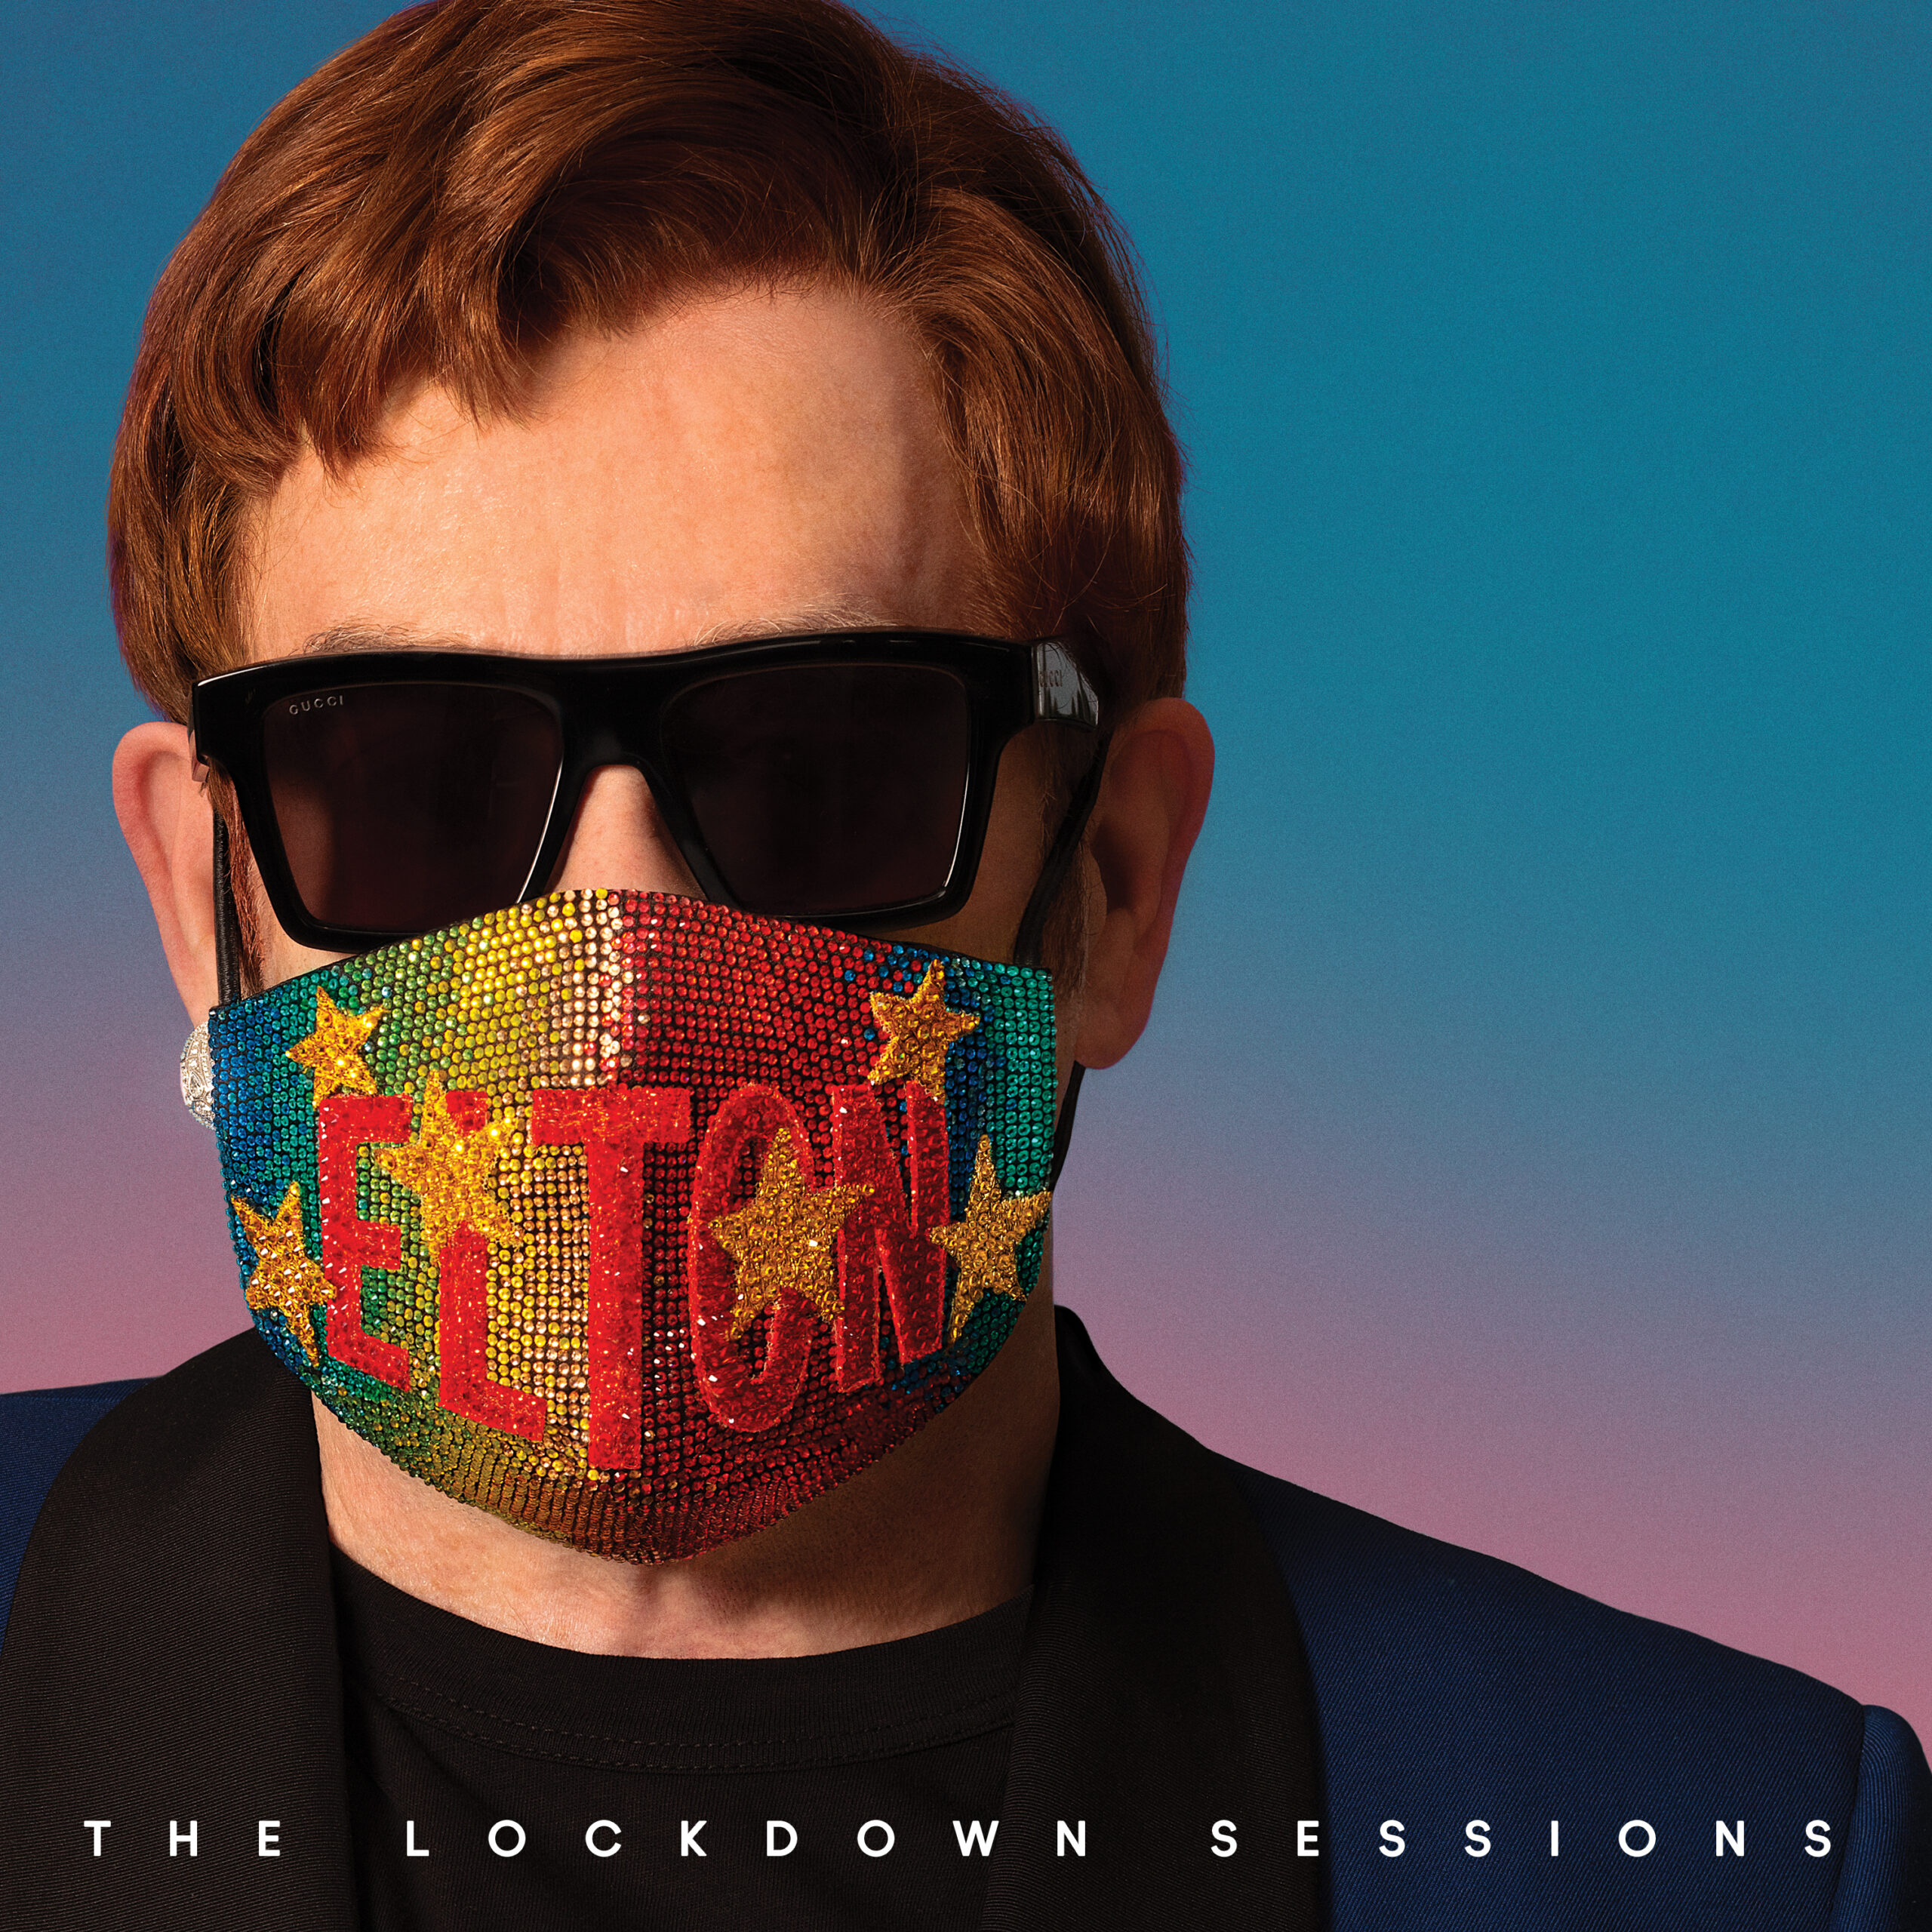 The Lockdown Session Cover art via Rogers and Cowan PMK for use by 360 Magazine